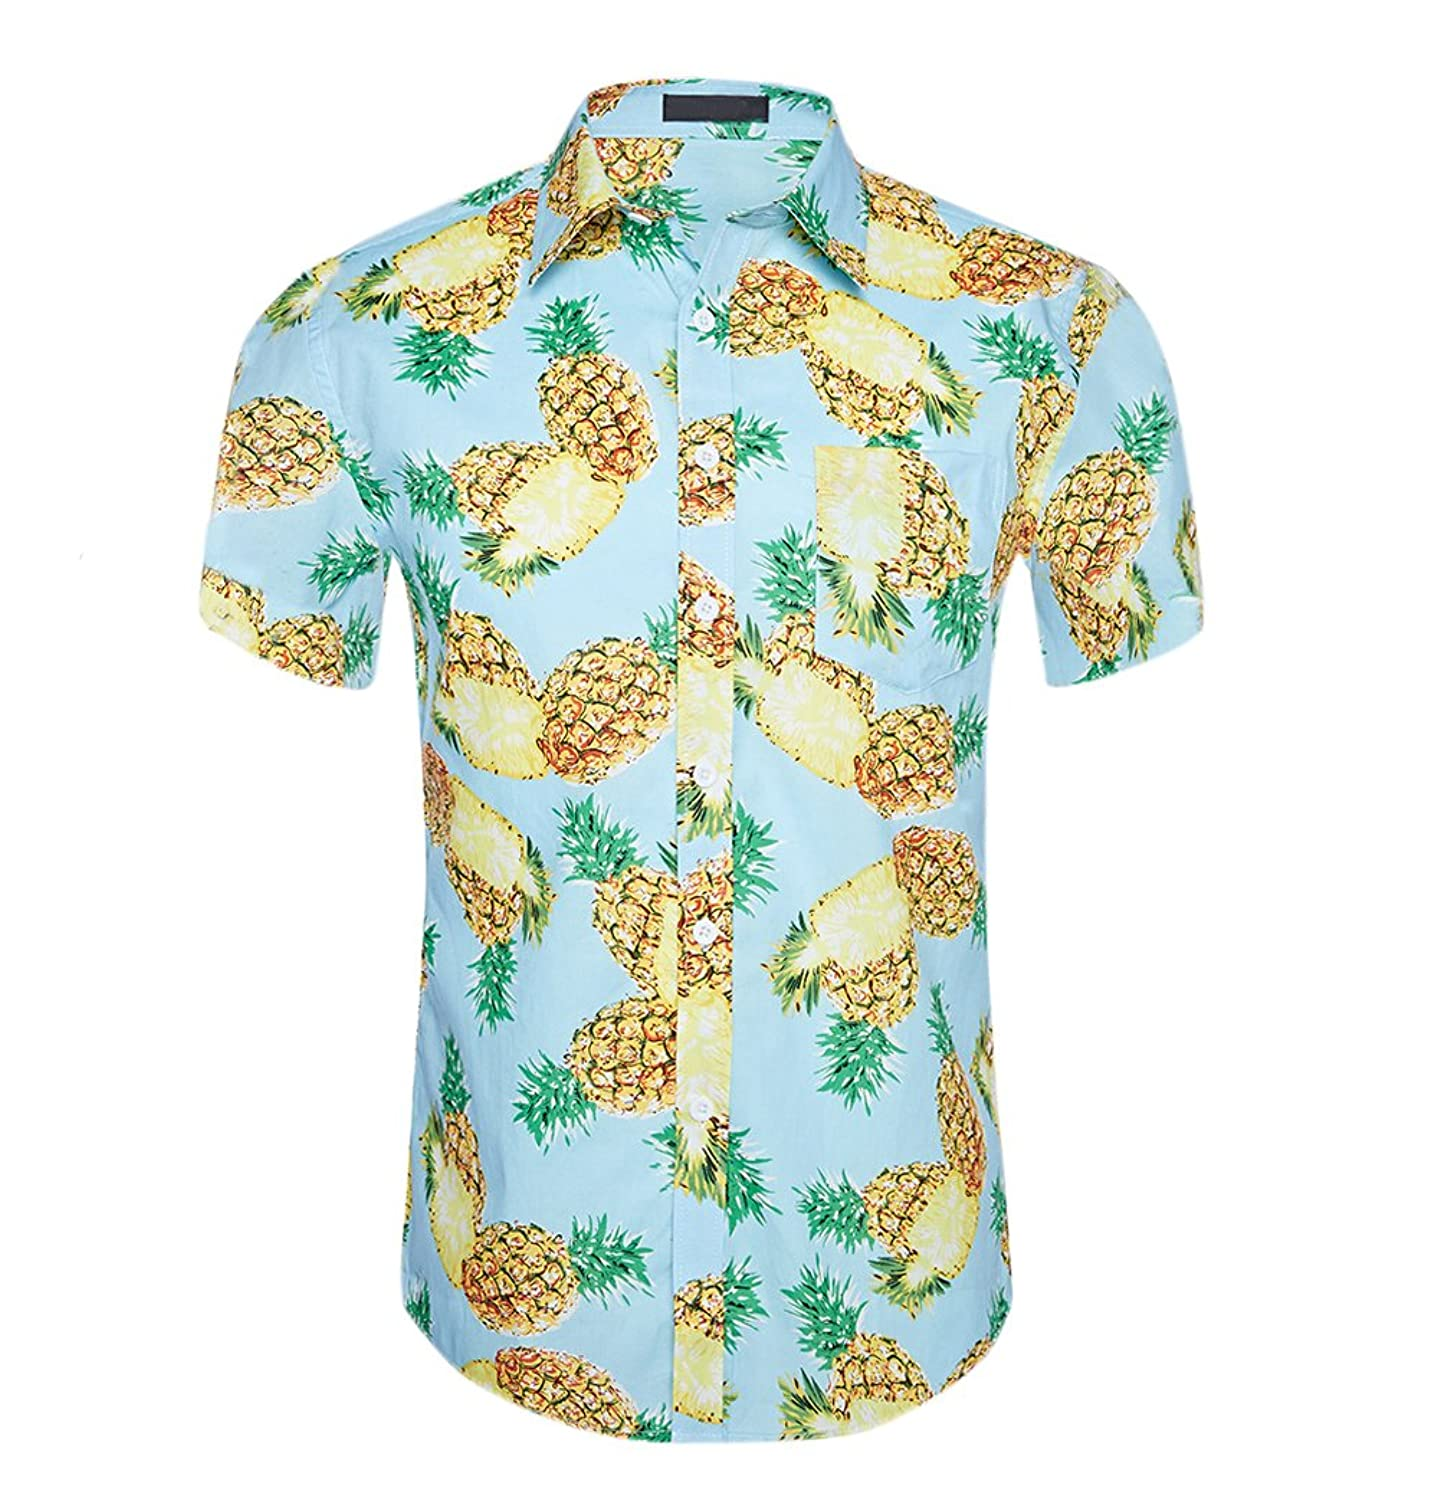 0c53b782 Men's Summer Casual Dress Button Down Flower Print Caribbean Aloha Hawaiian  Shirts This Shirt Featuring Short Sleeve,Slim Fit,Button Up  Closure,Straight ...